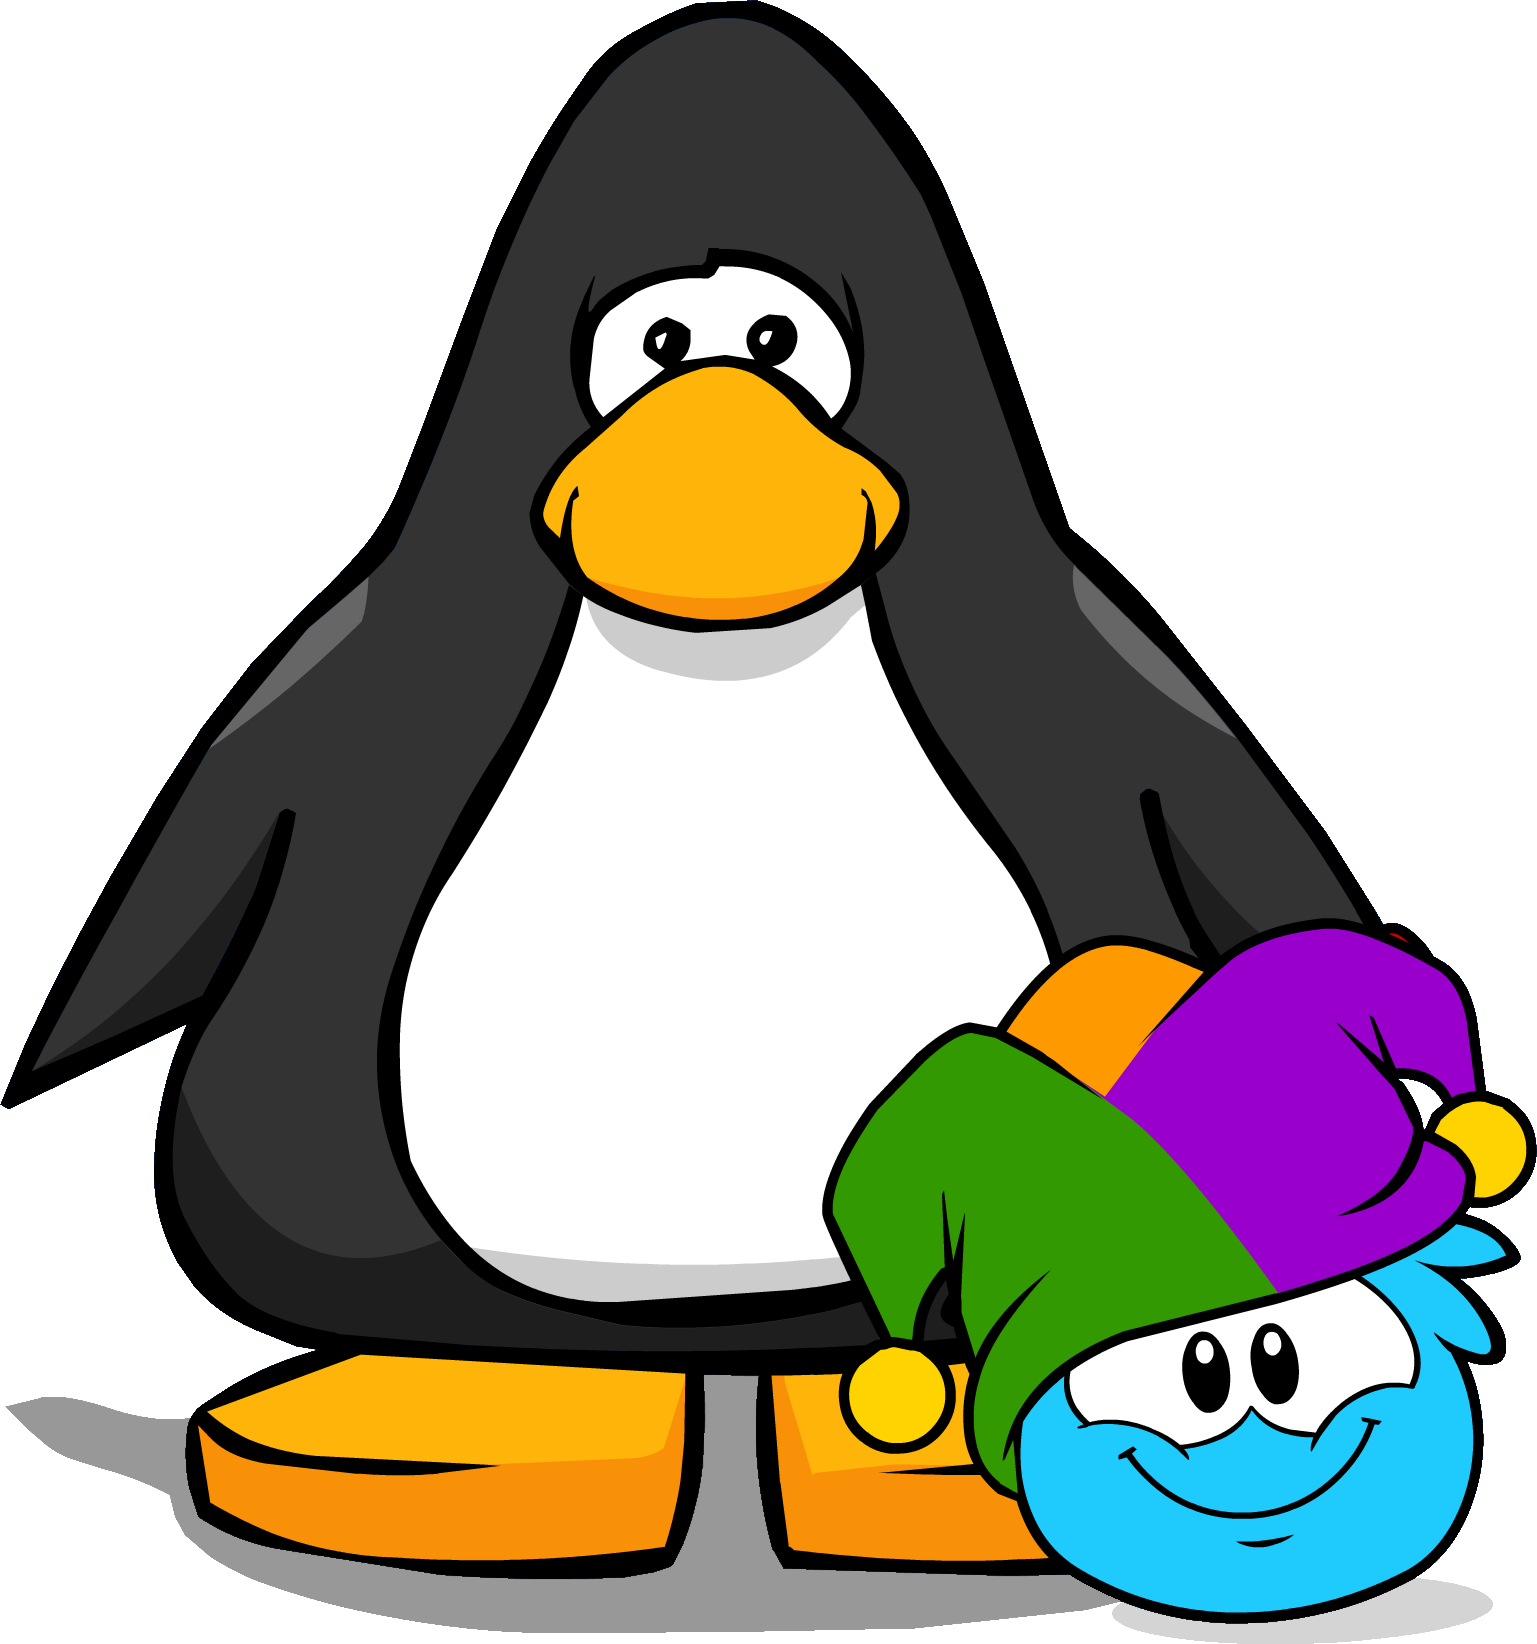 File:Jester Hat (Puffle Hat) on Player Card.png